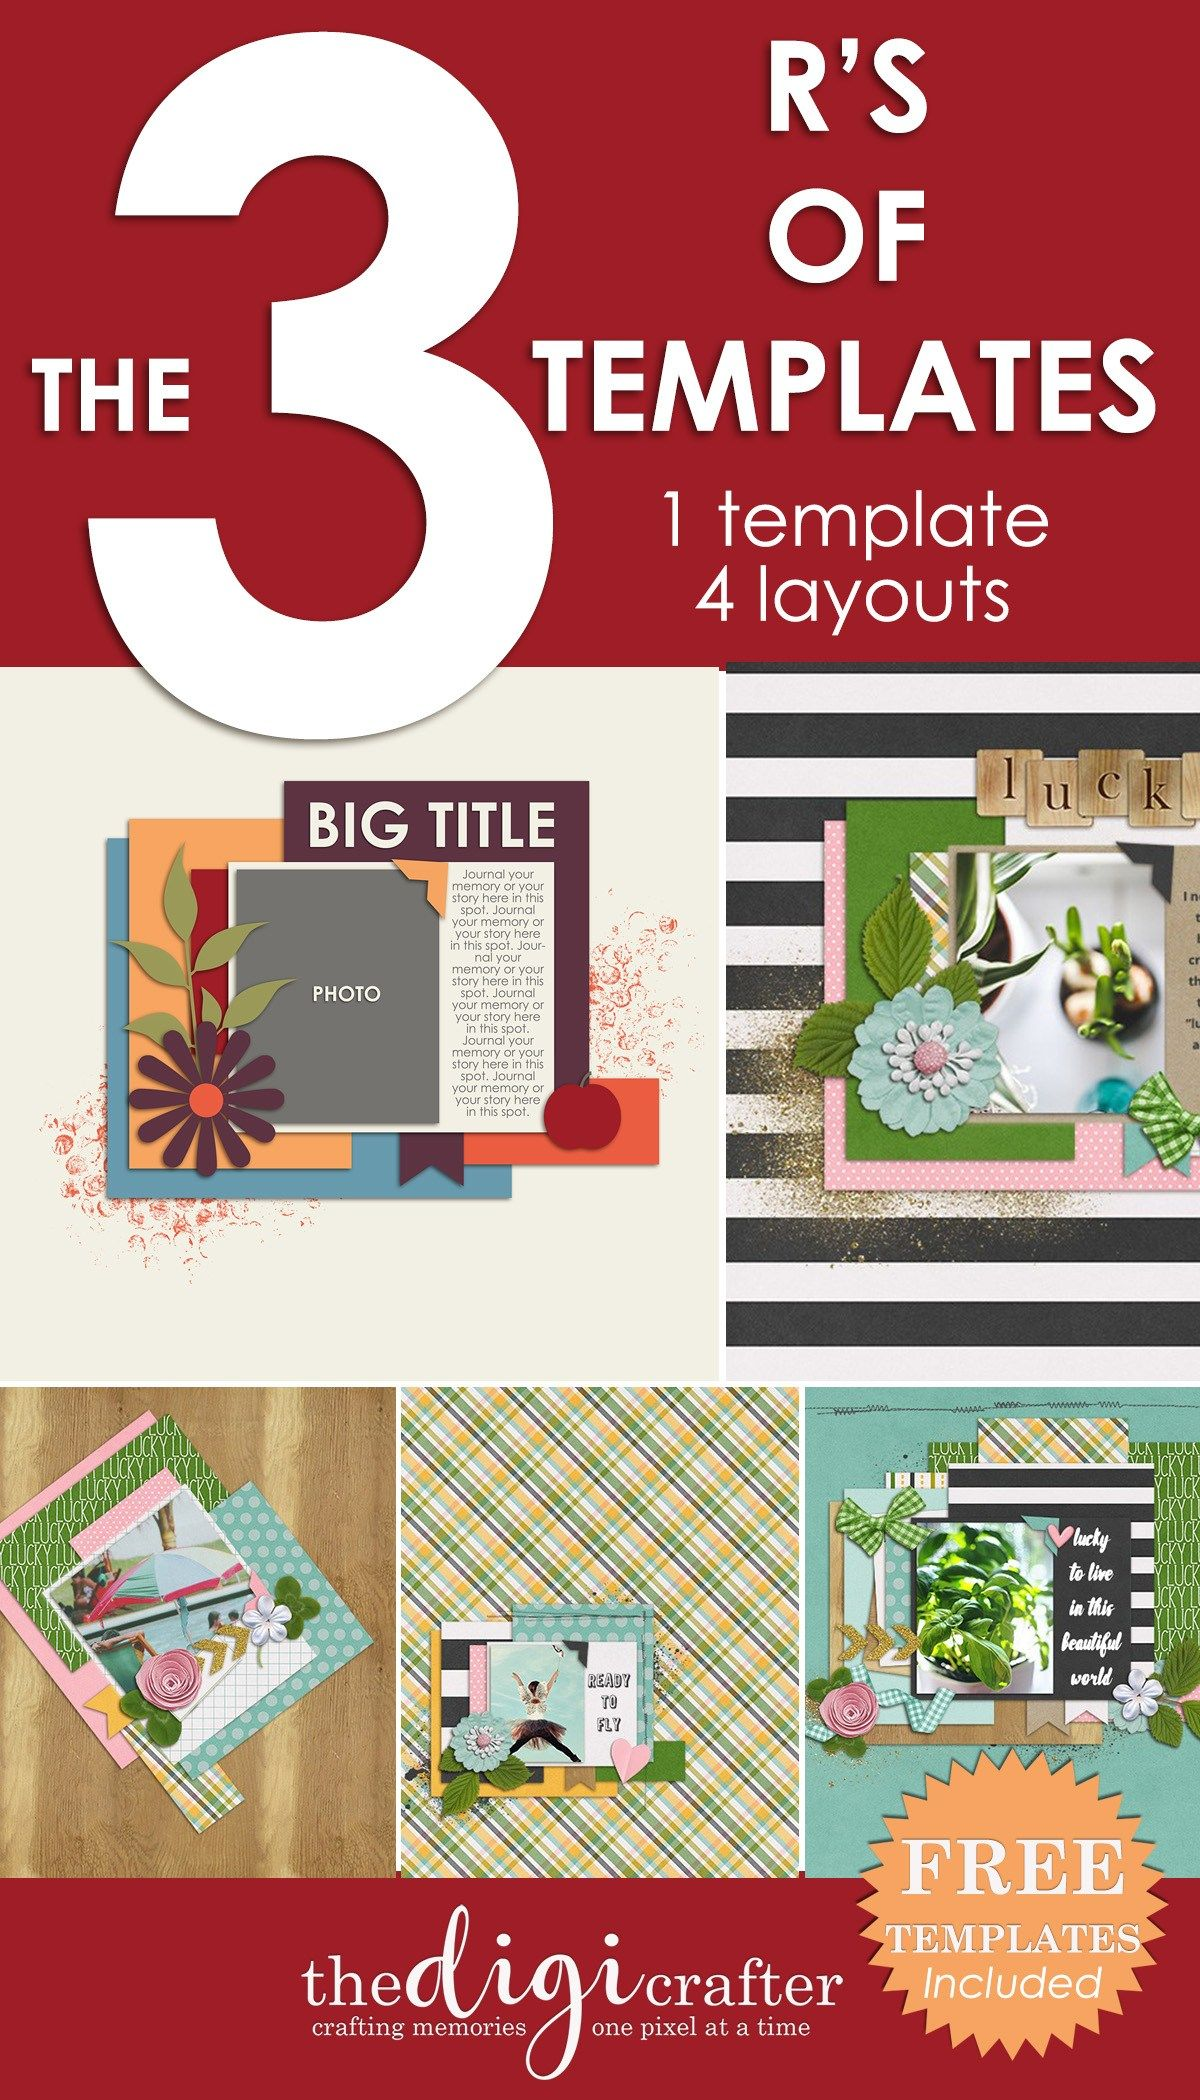 The 3 R s of Templates Digital Scrapbooking Tutorials